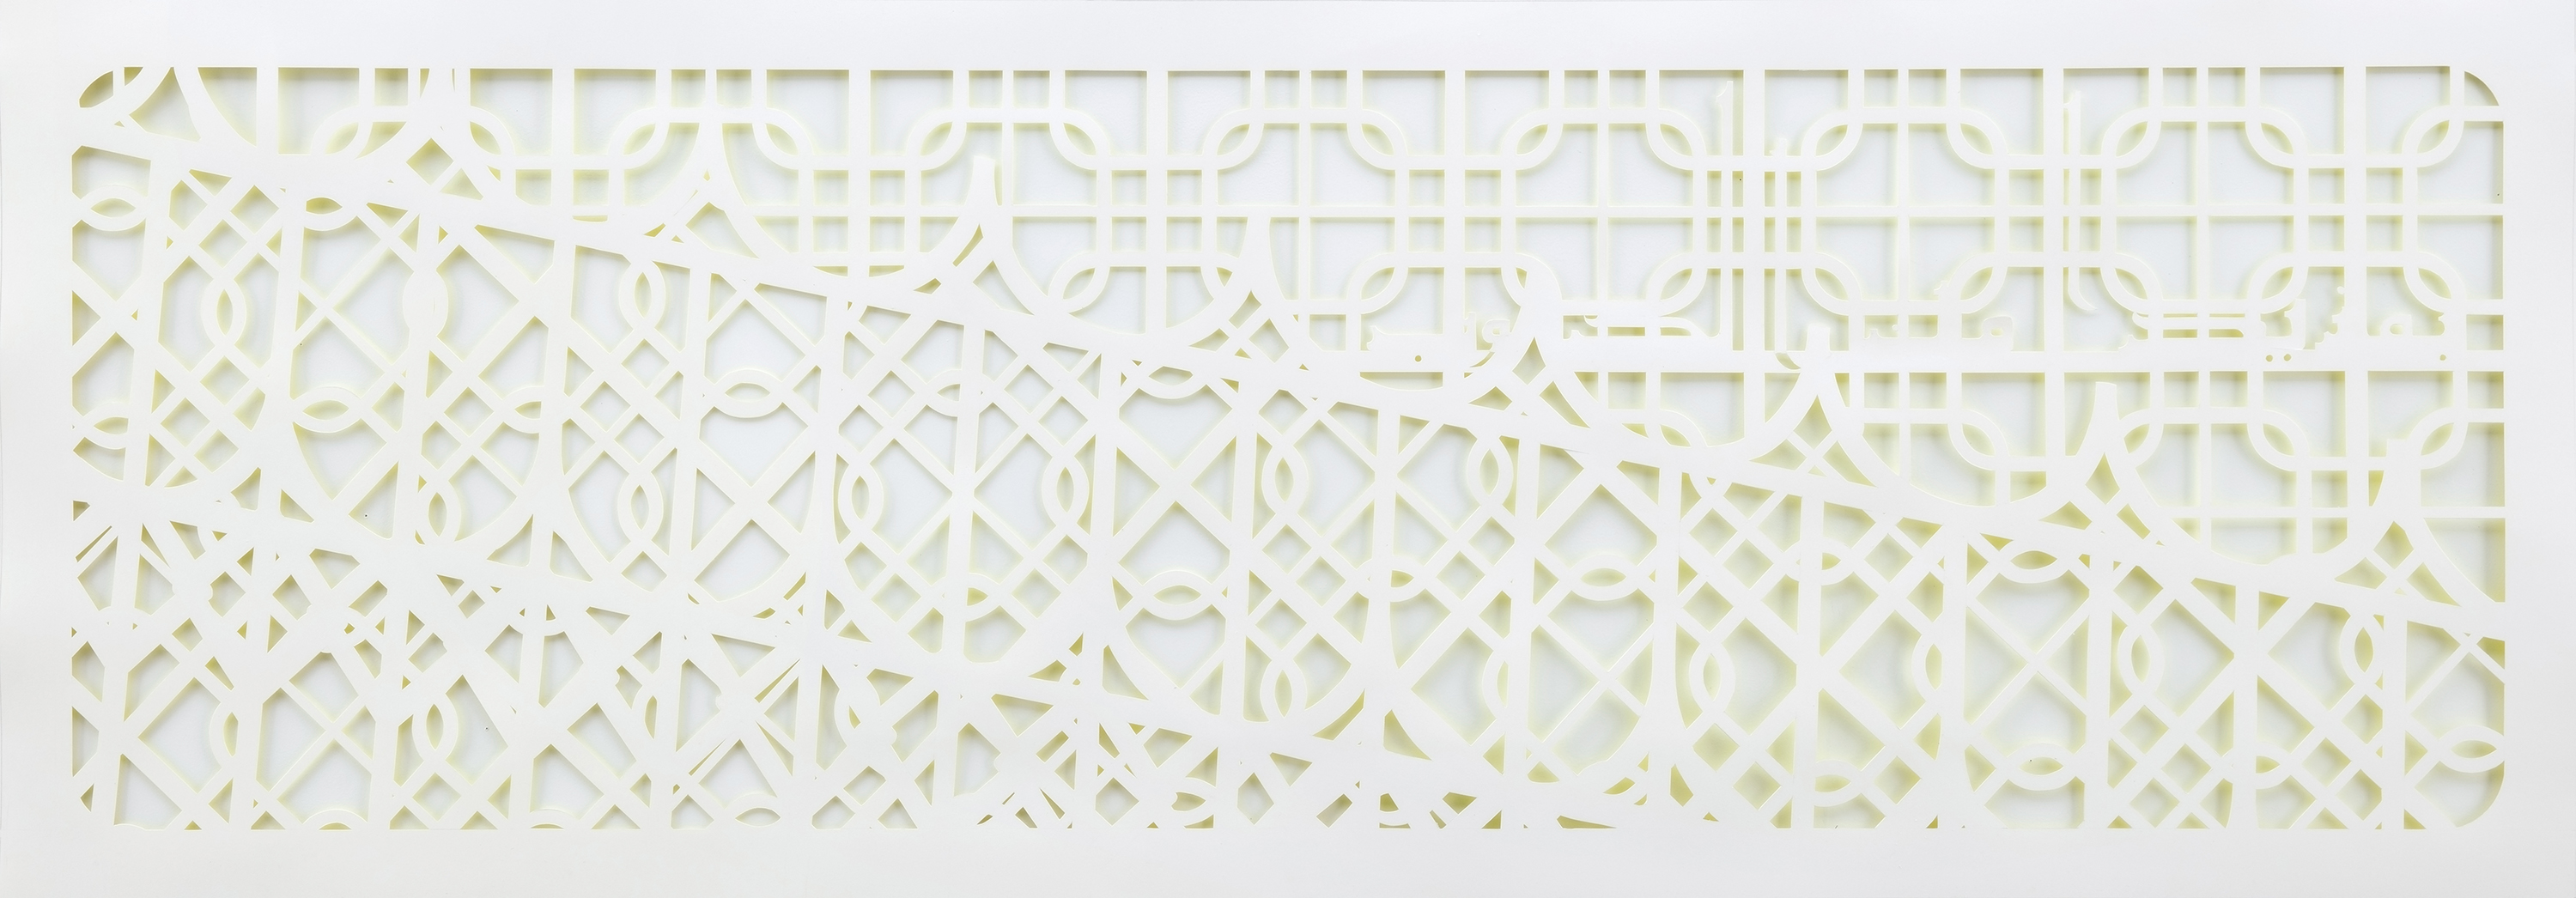 <p><em>Azbakeya (with a little more love)</em>, 2018. 26 x 74 Inches. Mixed media on hand cut paper.</p>